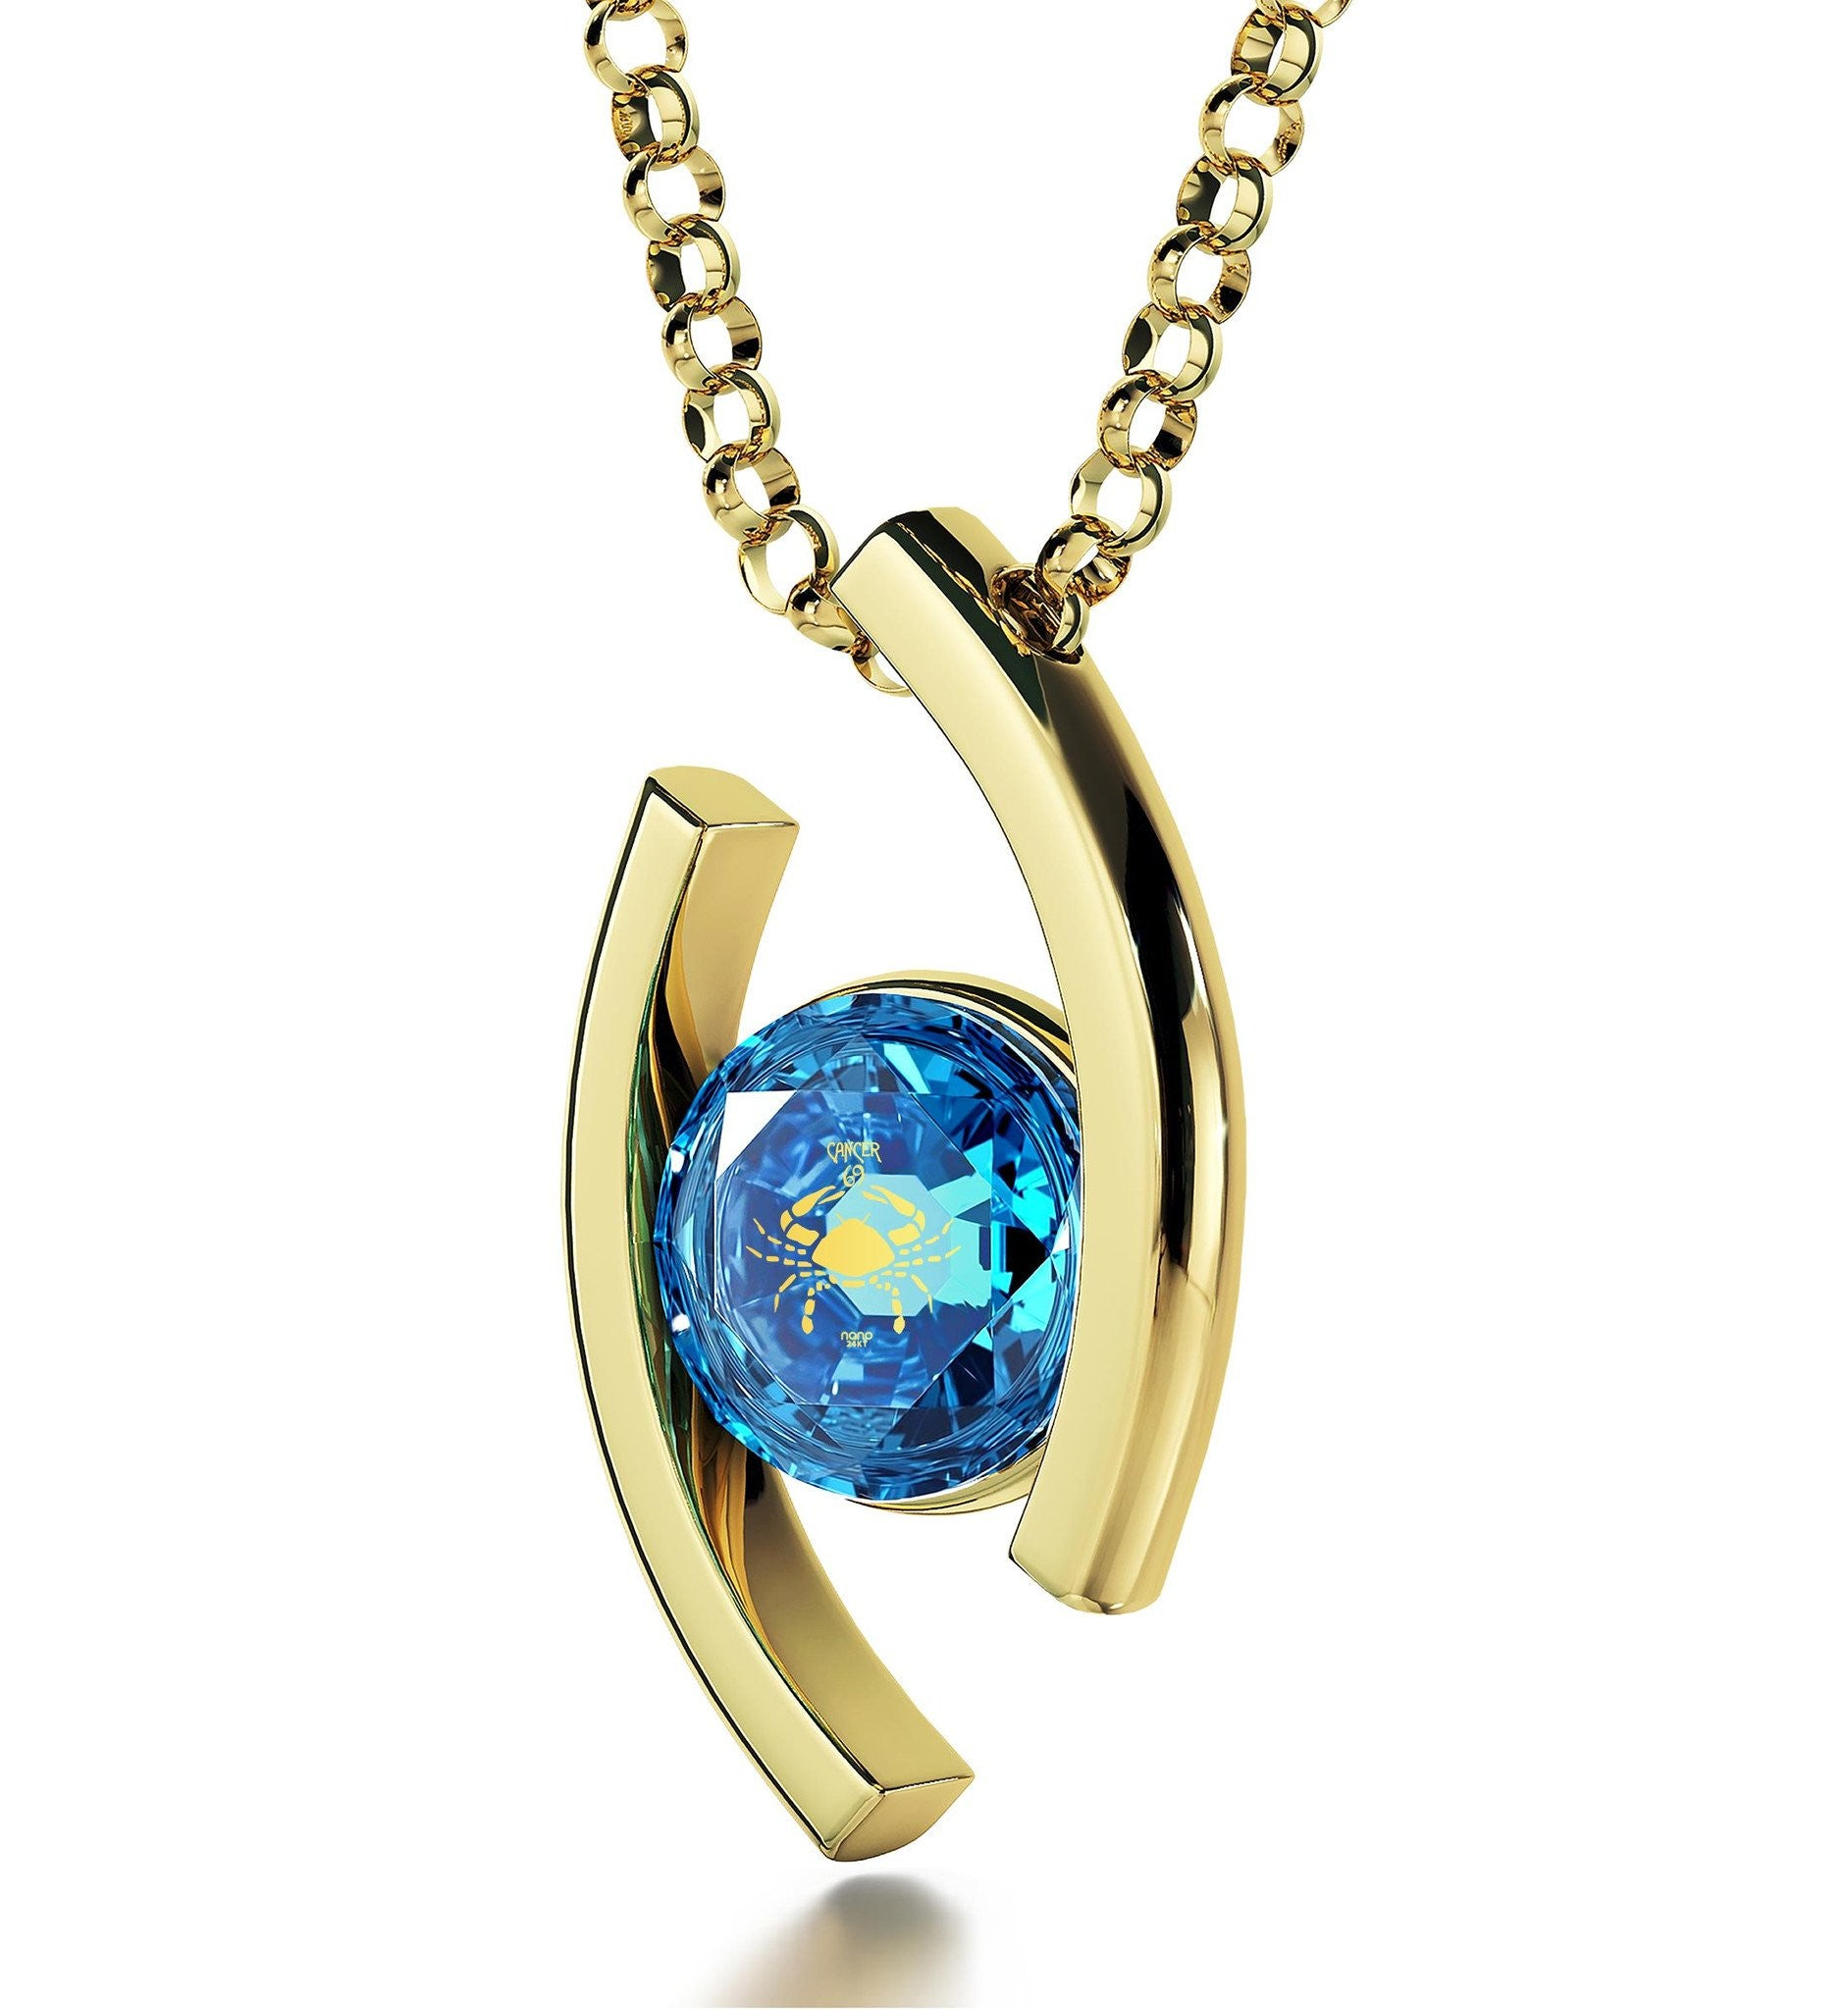 """Cancer Zodiac Necklaces With 24k Imprint, Mother's Day Gifts From Husband, Birthday Present for Wife, by Nano Jewelry"""